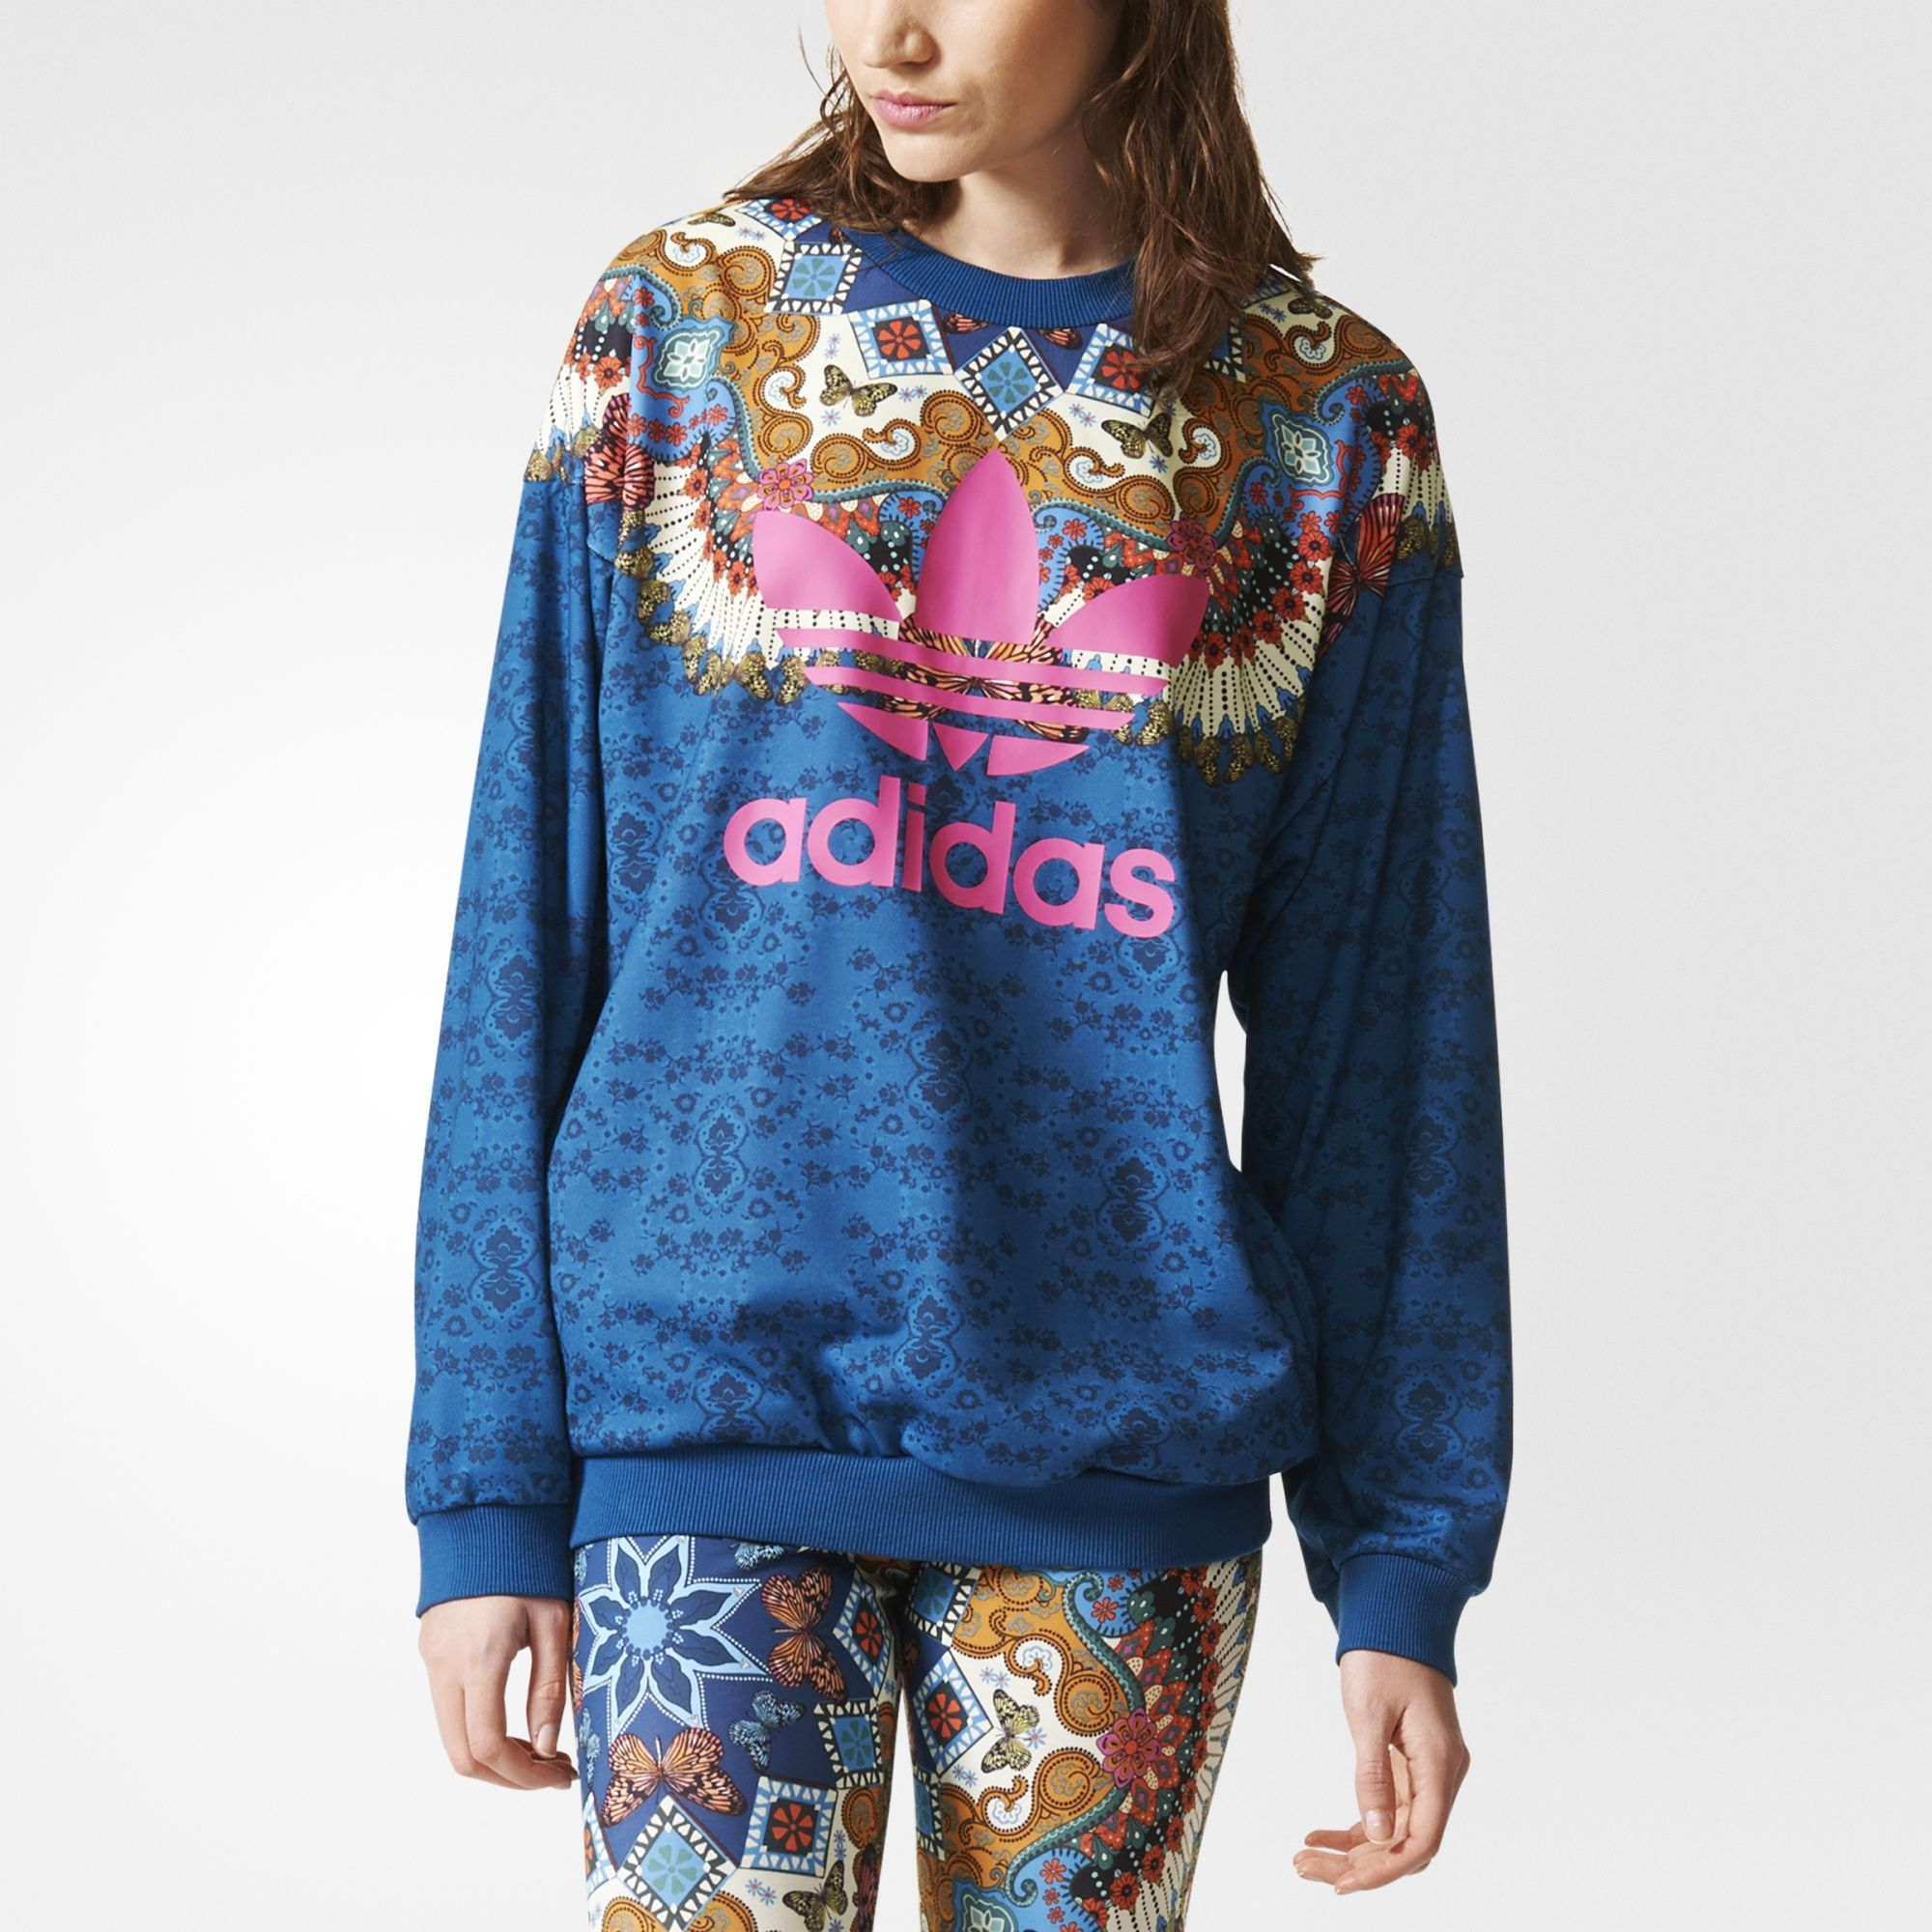 A Colorful Kaleidoscope Like Print Repeats Across This Women S Sweatshirt A Collaboration With Brazili Sweatshirts Sweatshirts Women Women Hoodies Sweatshirts [ 2000 x 2000 Pixel ]